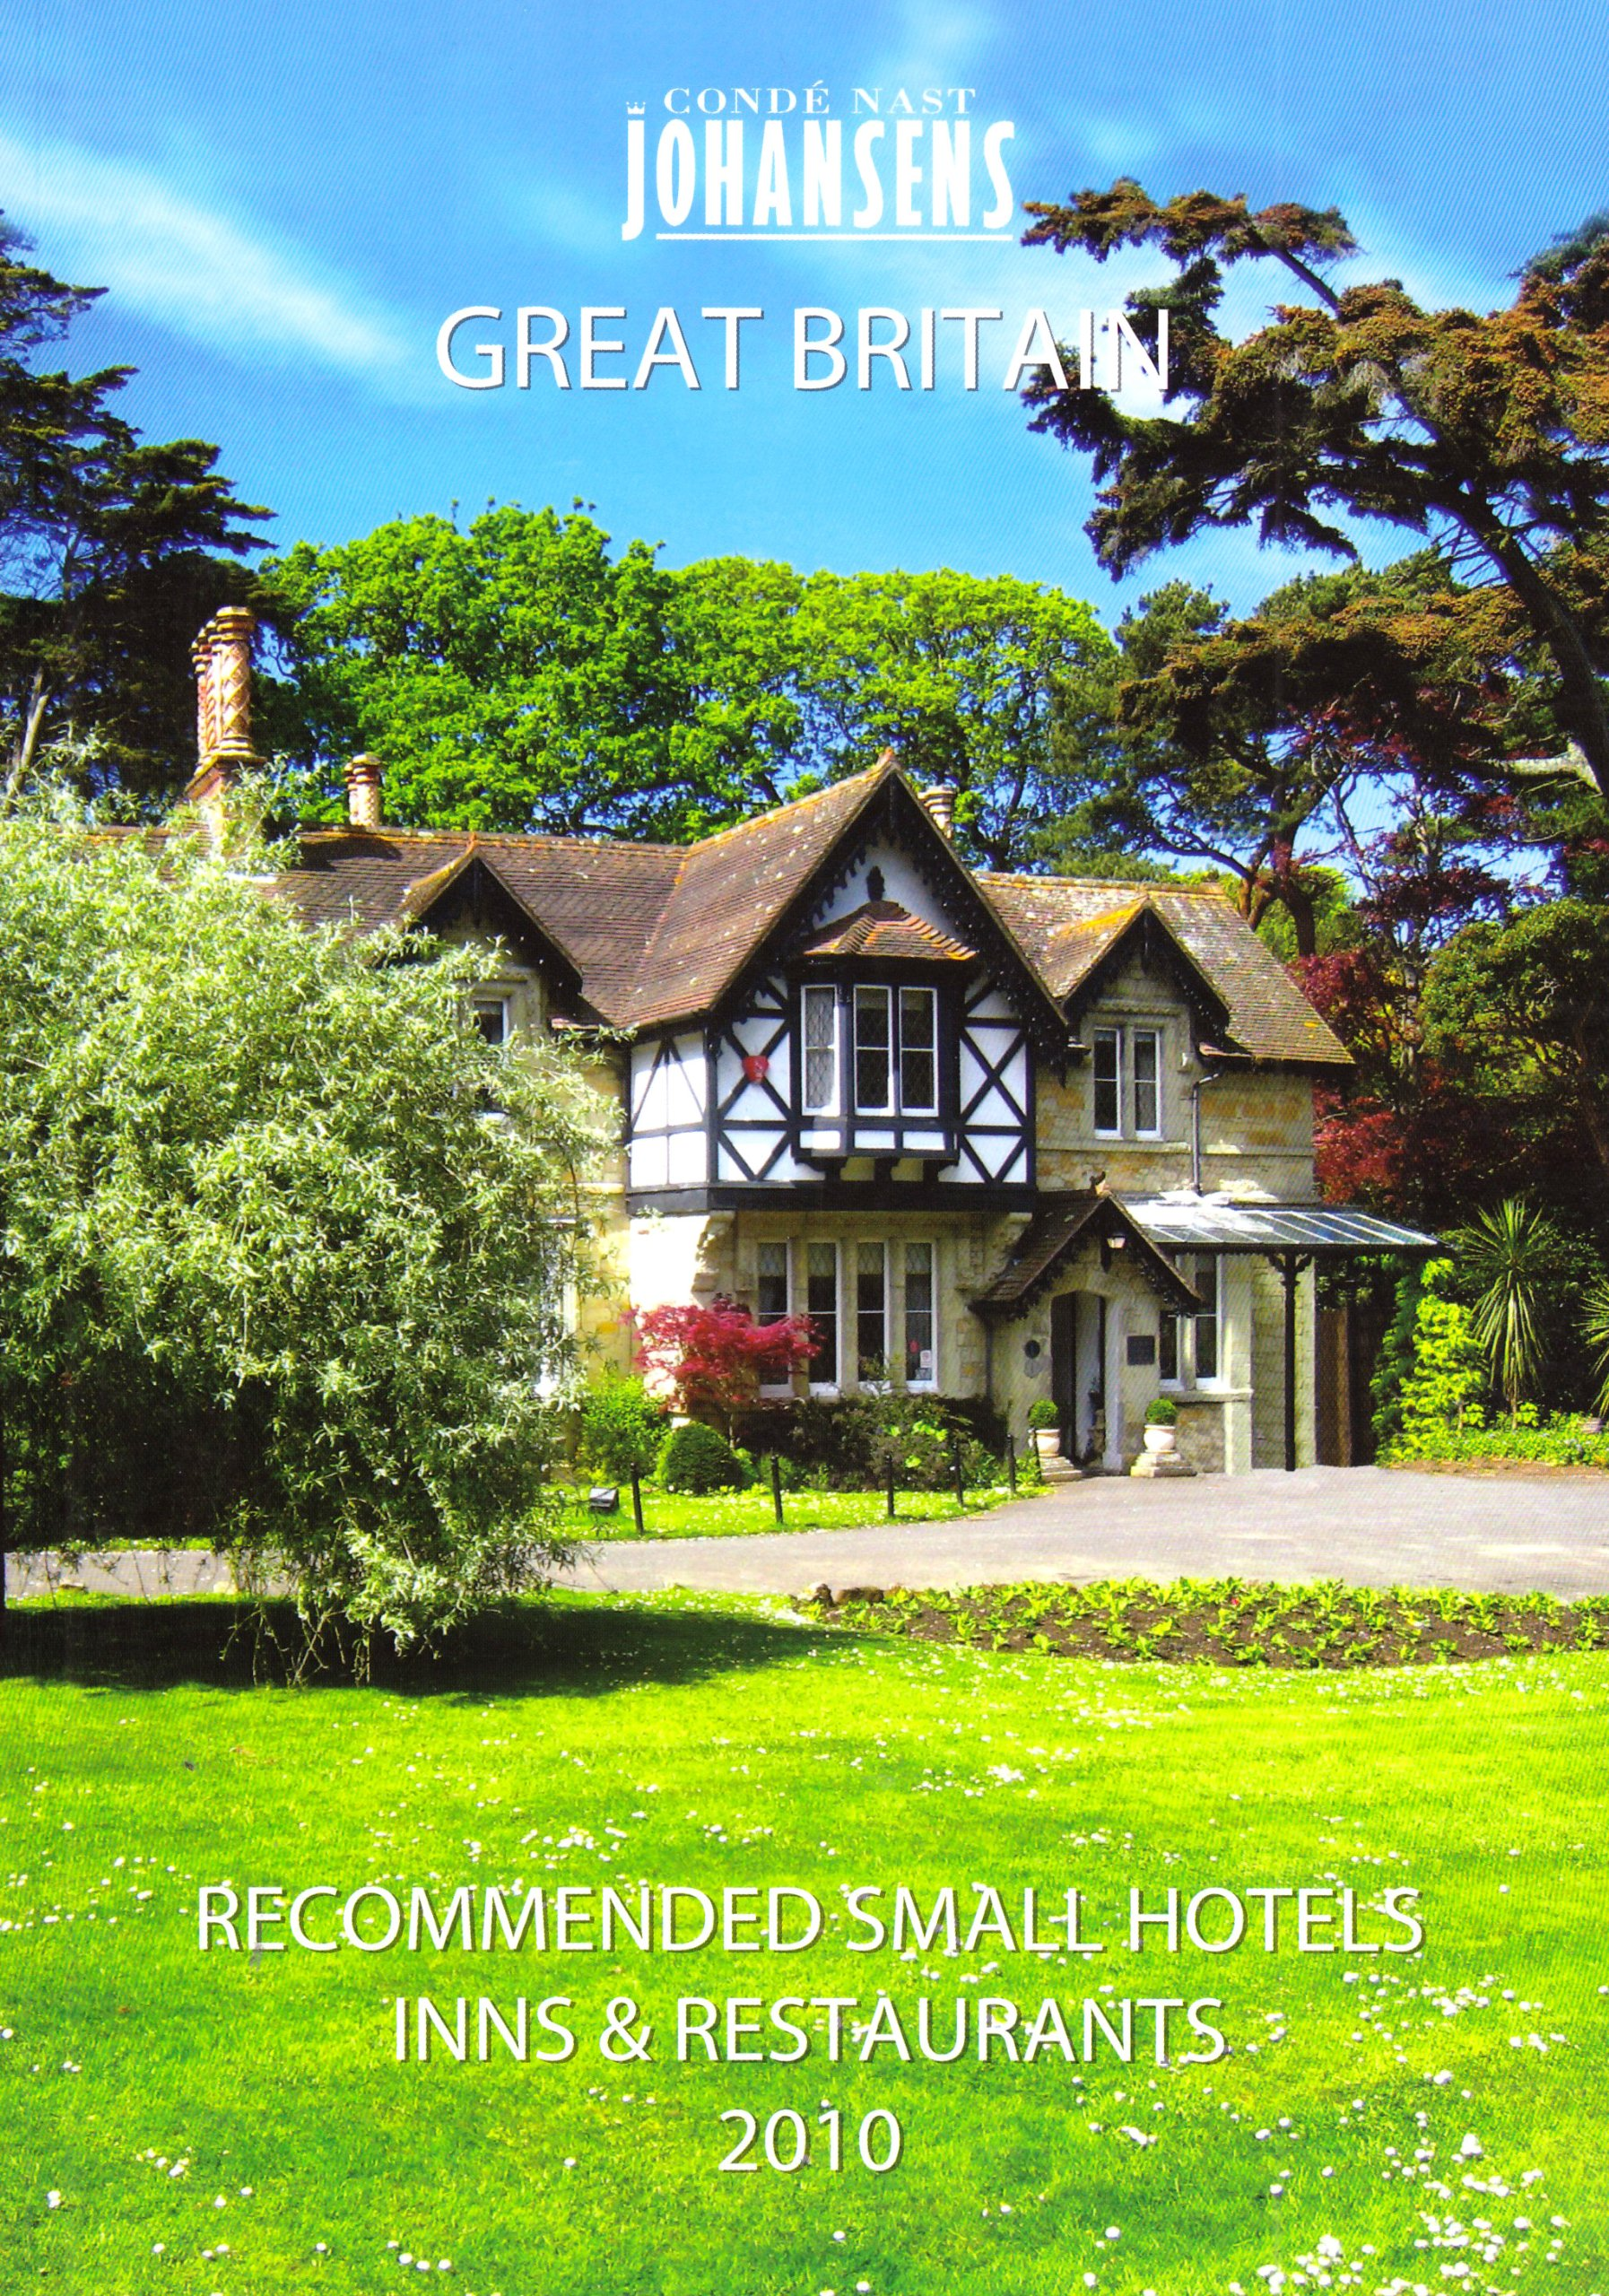 Condé Nast Johansens Recommended Small Hotels, Inns and Restaurants - Great Britain and Ireland 2010 (Johansens Recommended Country Houses, Small ... Traditional Inns: Great Britain and Ireland)